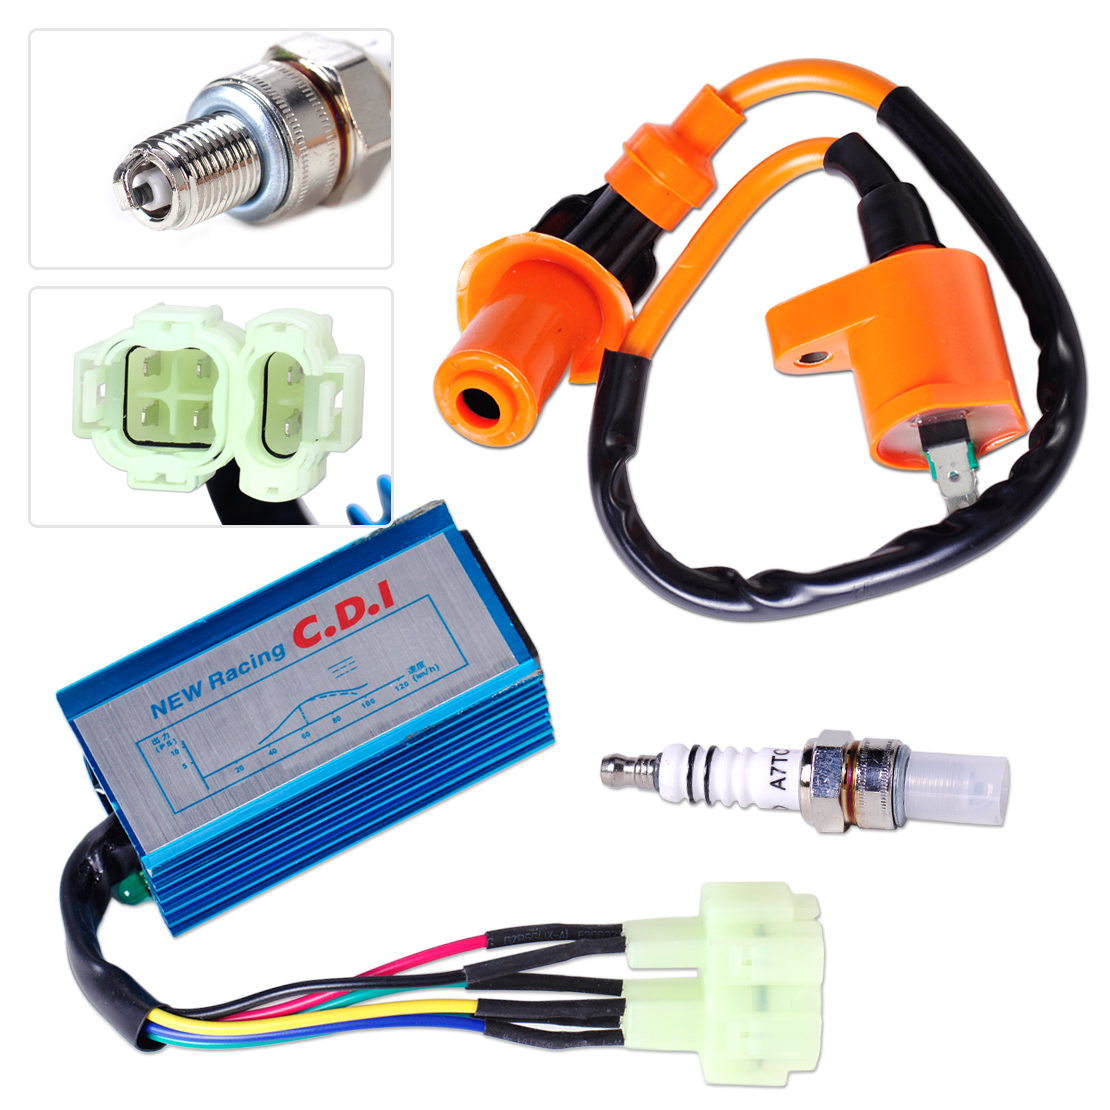 DWCX Performance Ignition Coil + Spark Plug + + Wire CDI Box for GY6 50cc - 90cc 125cc 150cc Scooter ATV Go Kart Moped Dirt bike